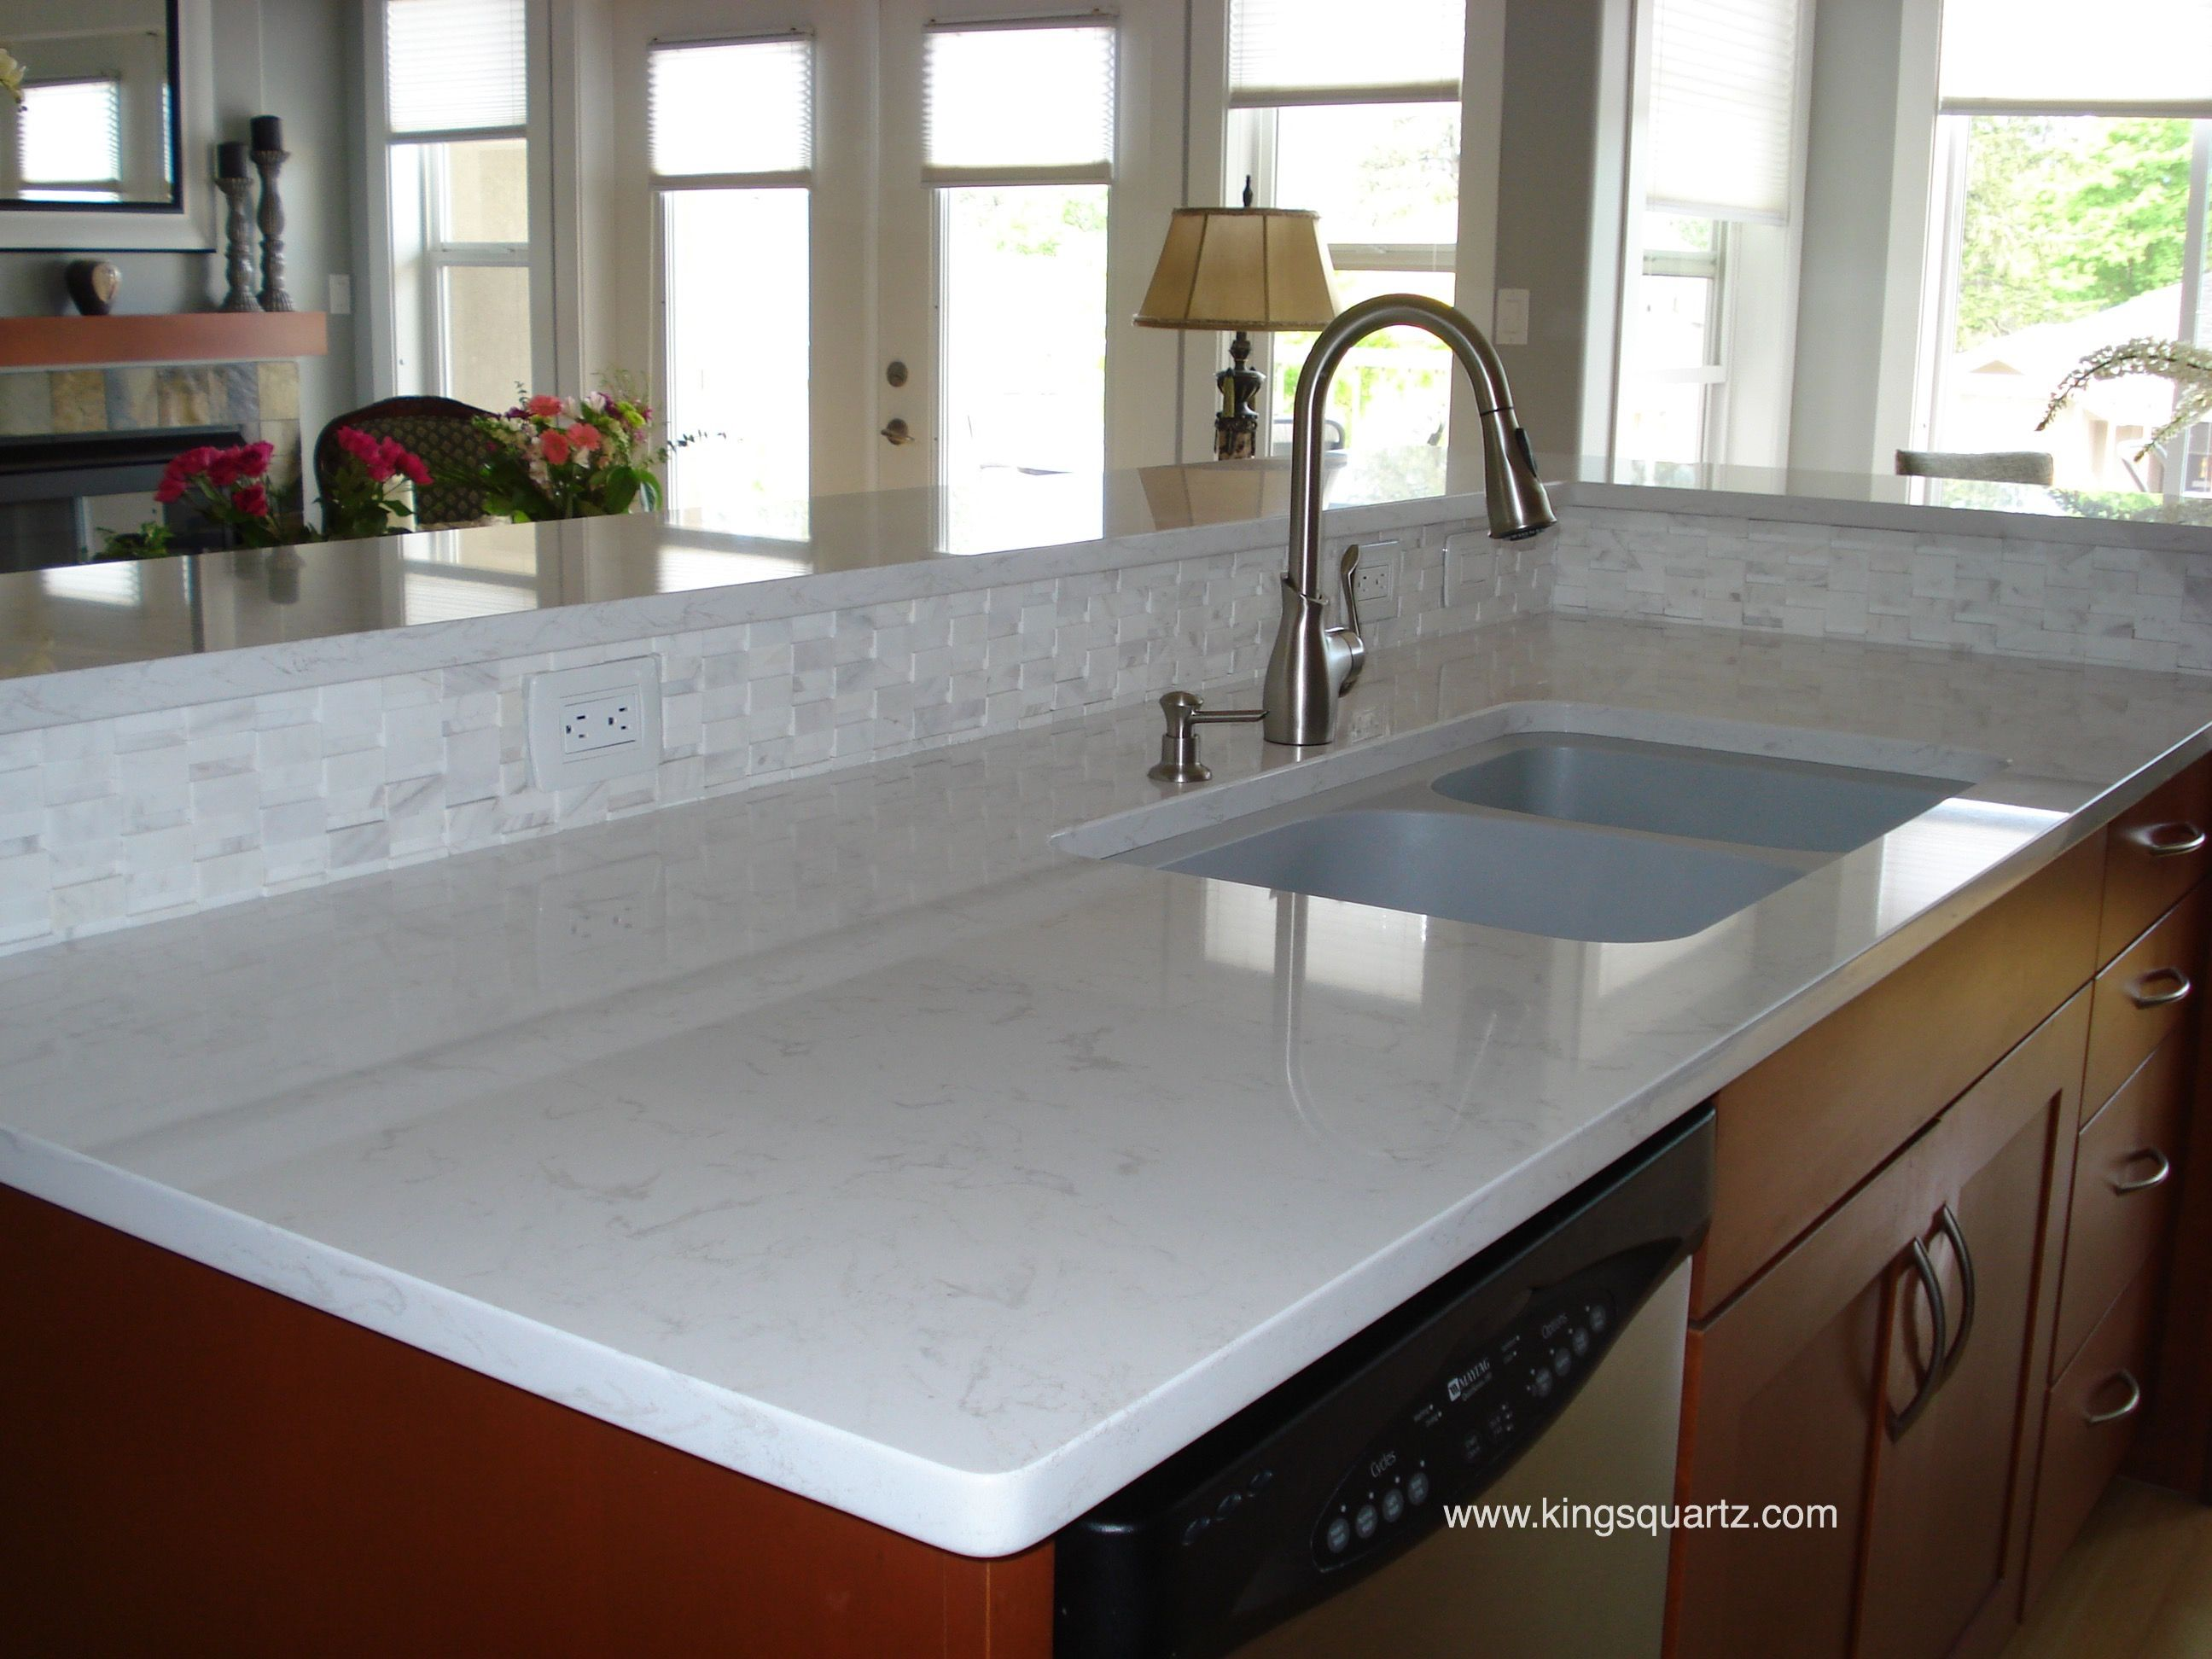 granite countertops kitchens quartz slabs terrazzo recycled color seattle bathroom full surfaces remnants tampa grey translucent cracked of images countertop kitchen portland for worktop friendly glass environmentally concrete backsplash size tile